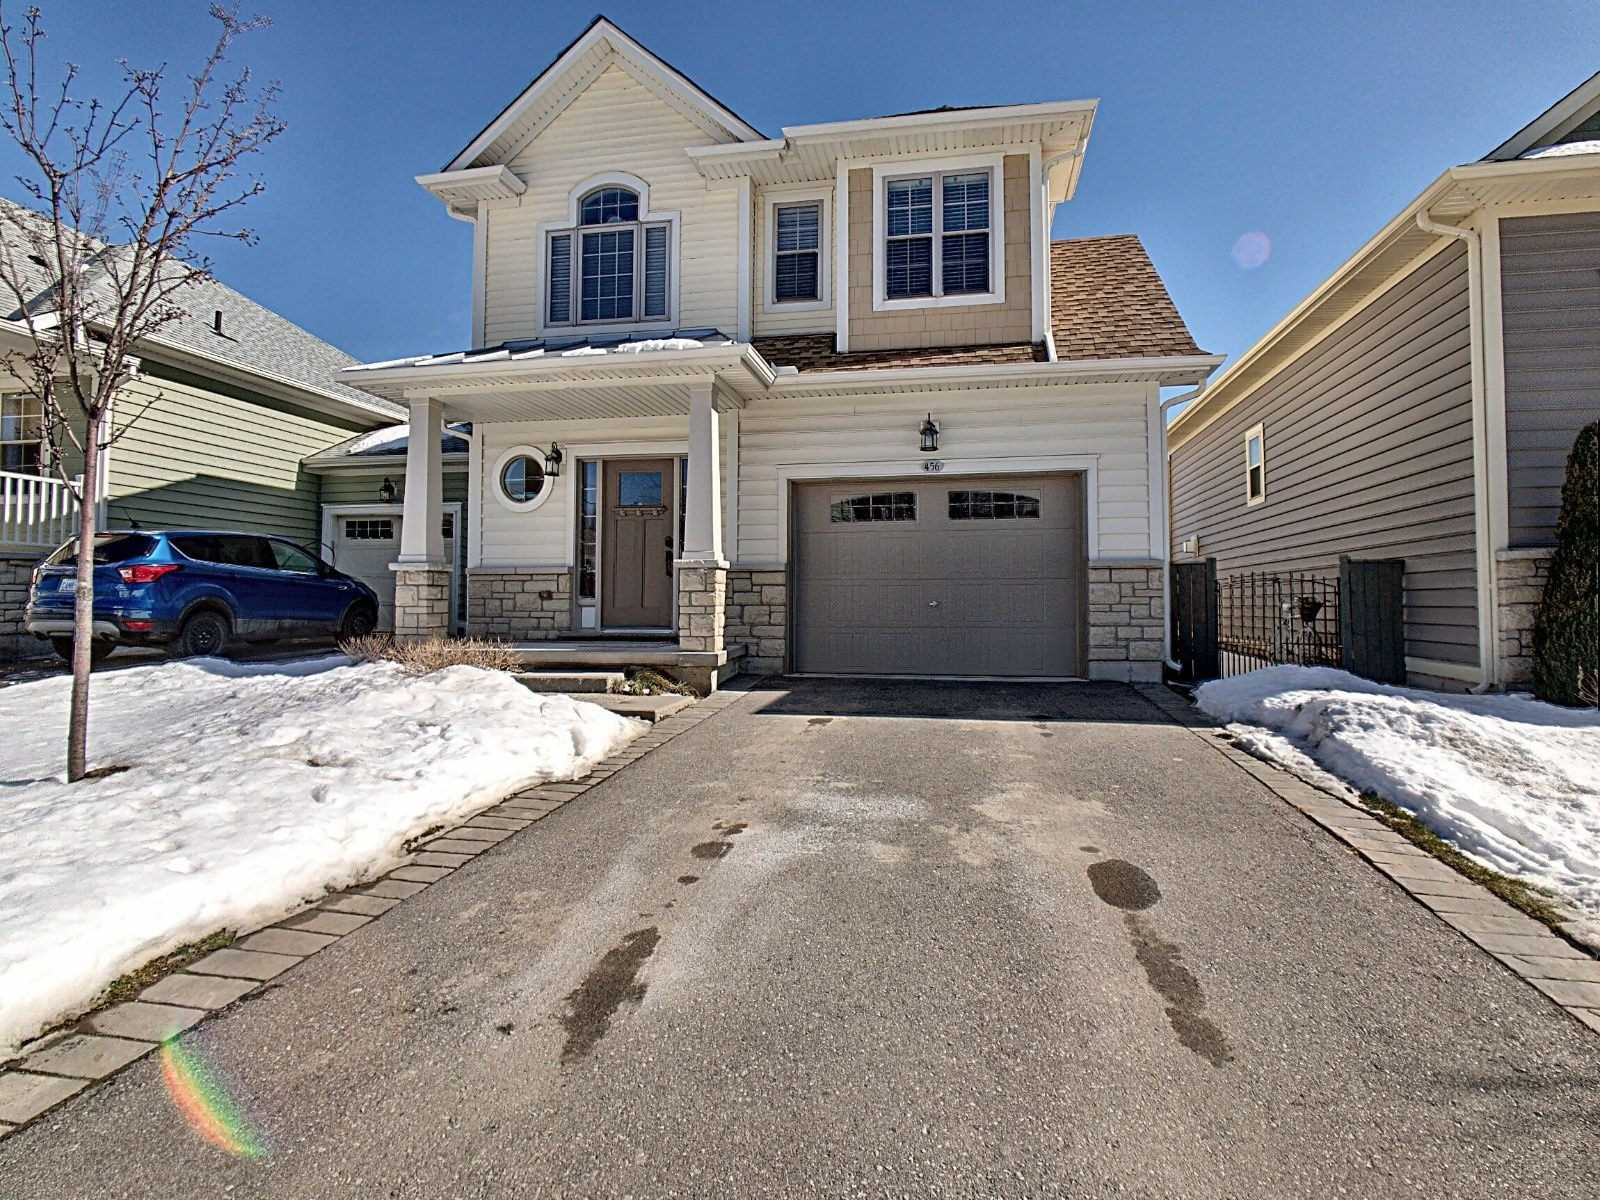 pictures of house for sale MLS: X5129785 located at 456 Ridgeway Rd, Fort Erie L0S1B0